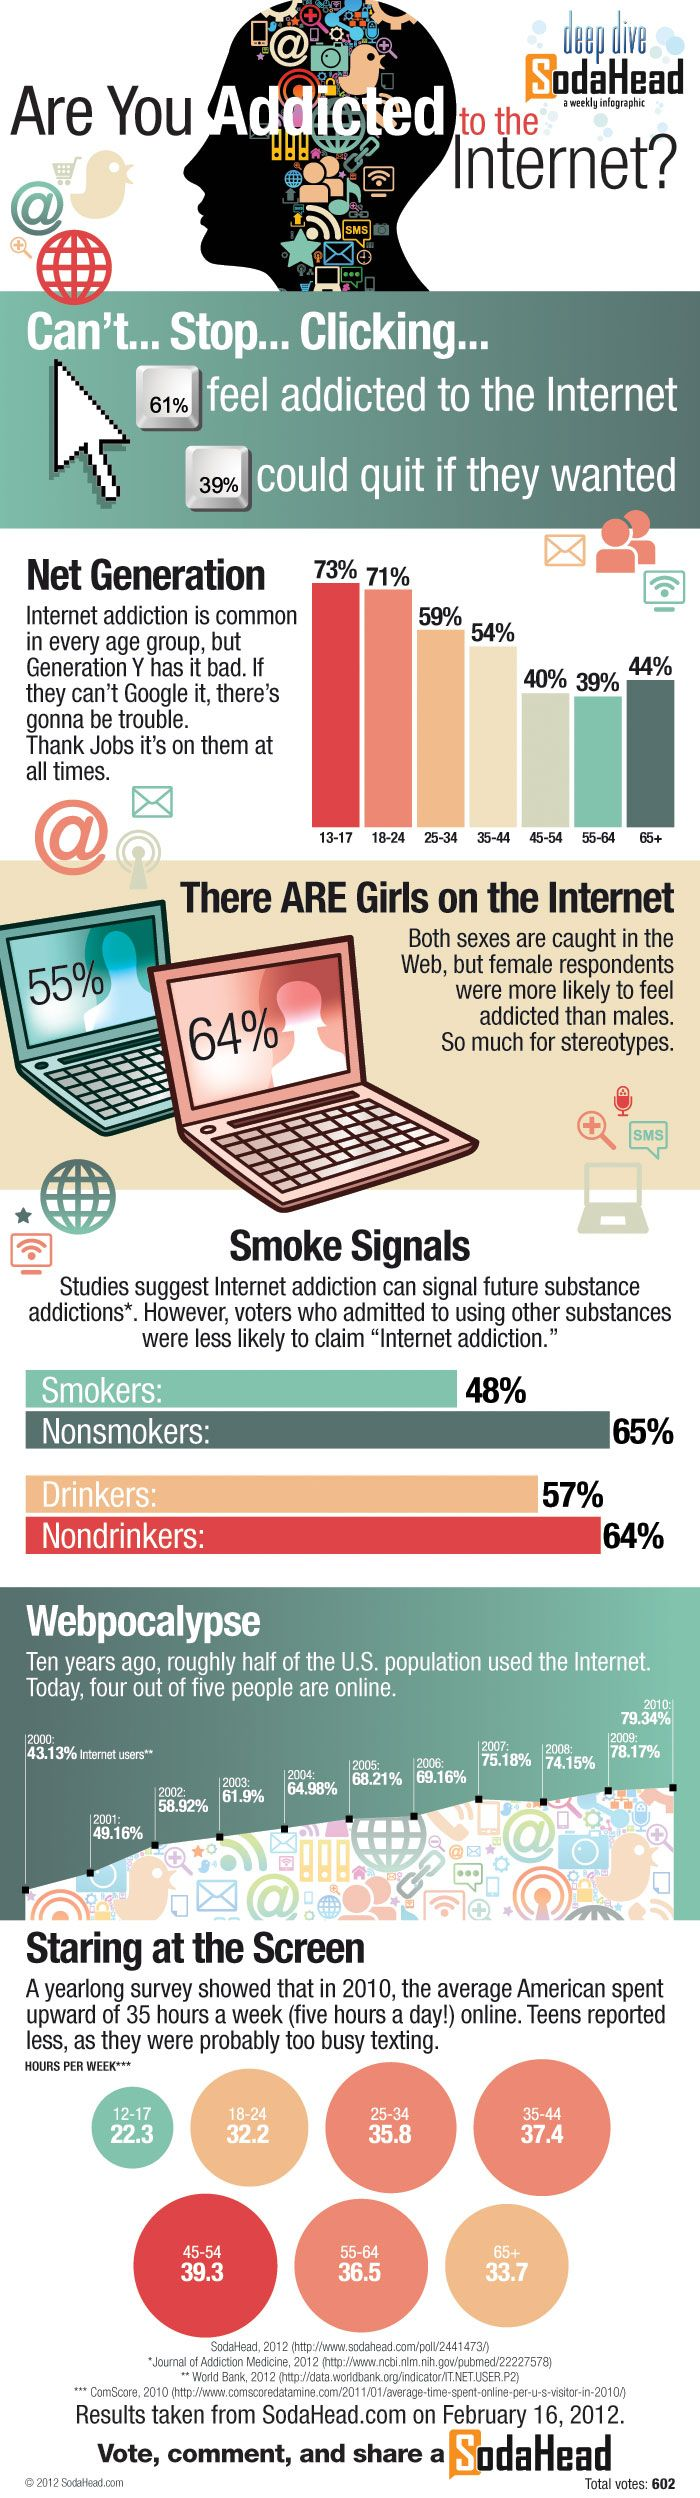 Are You Addicted To The Internet? #Infographic